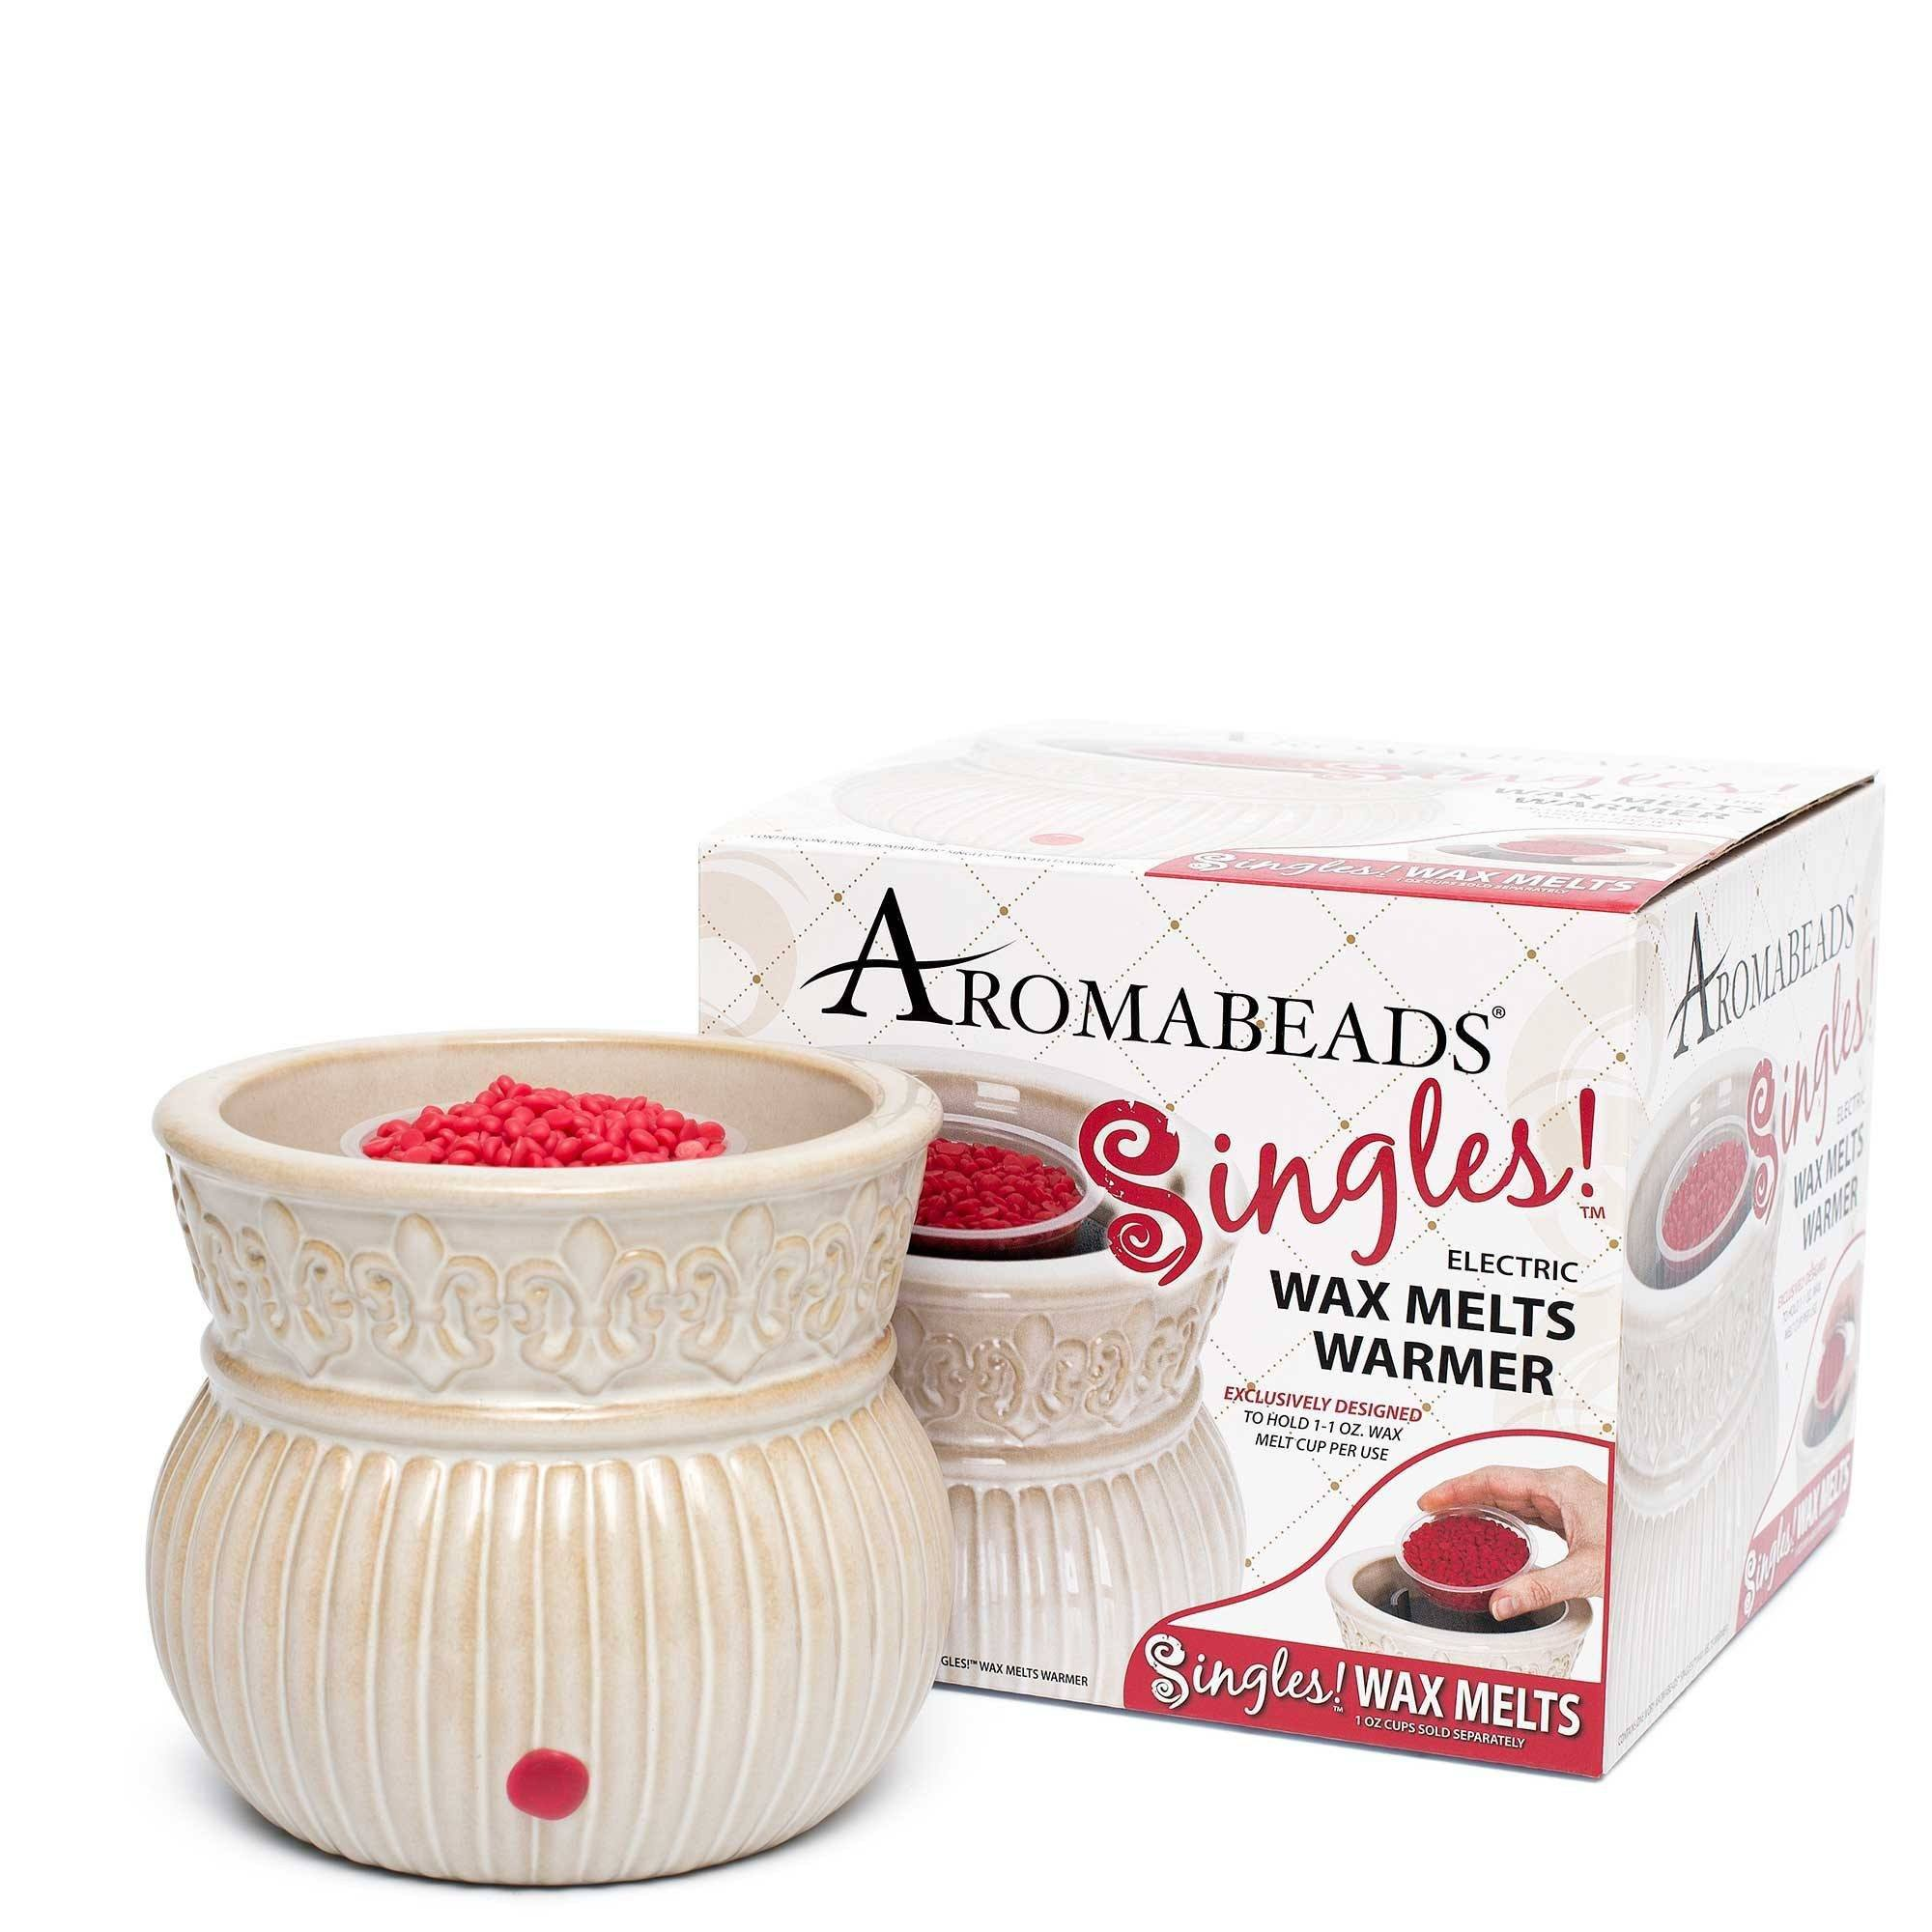 Aromabeads Singles Caramel Apple Toffee Wax Melts 10 Pack Melts Candlemart.com $ 11.49